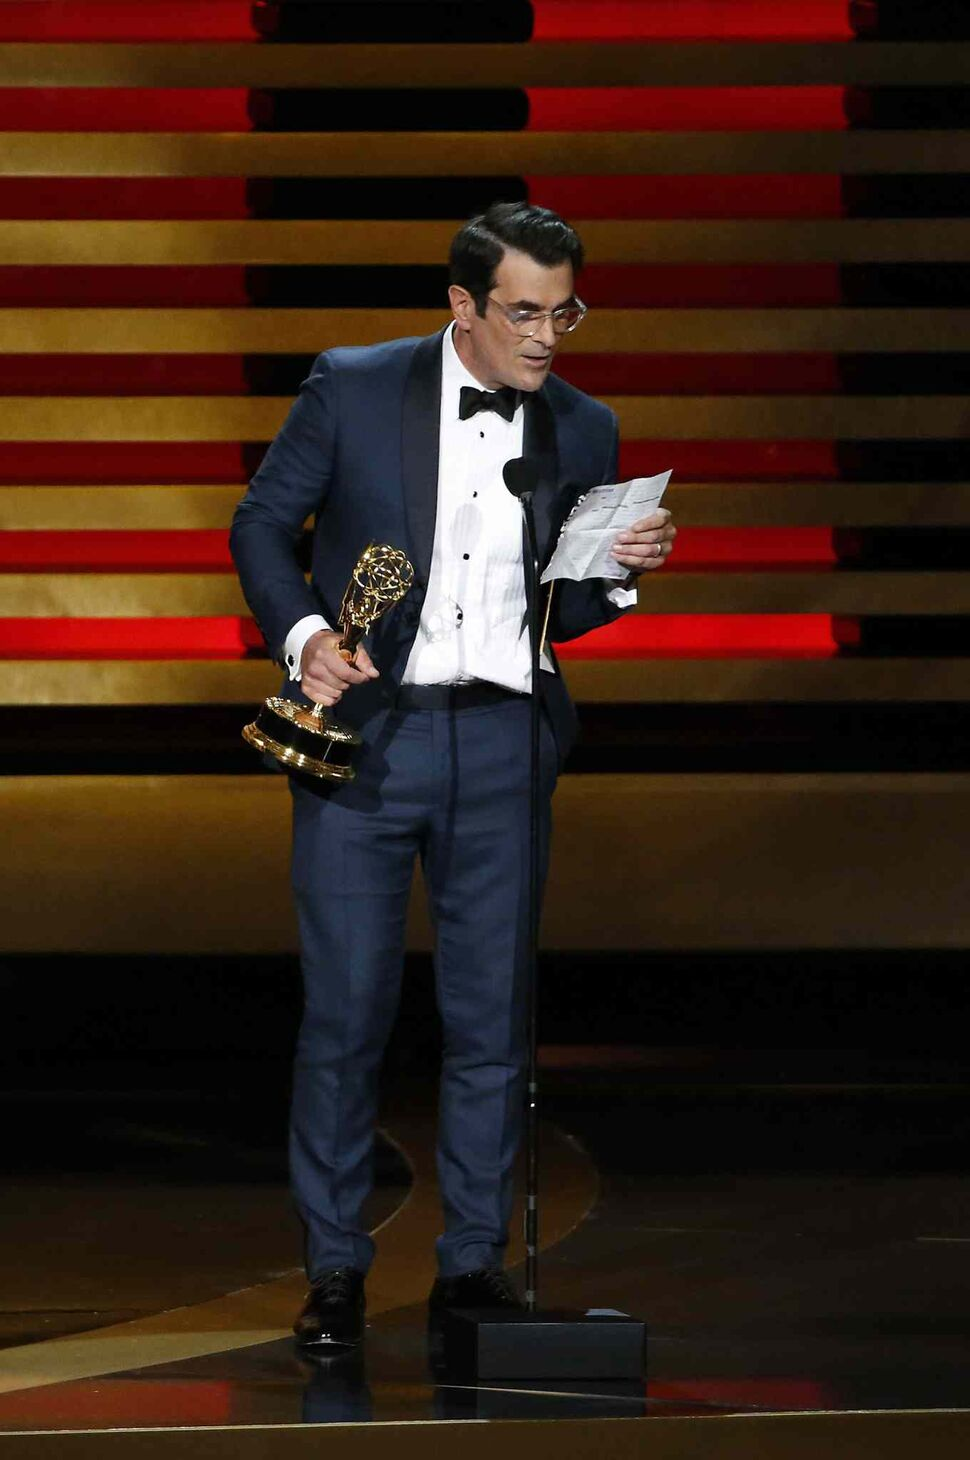 Modern Family's Ty Burrell offers his acceptance speech for Best Supporting Actor in a Comedy Series. (Tribune Media MCT)